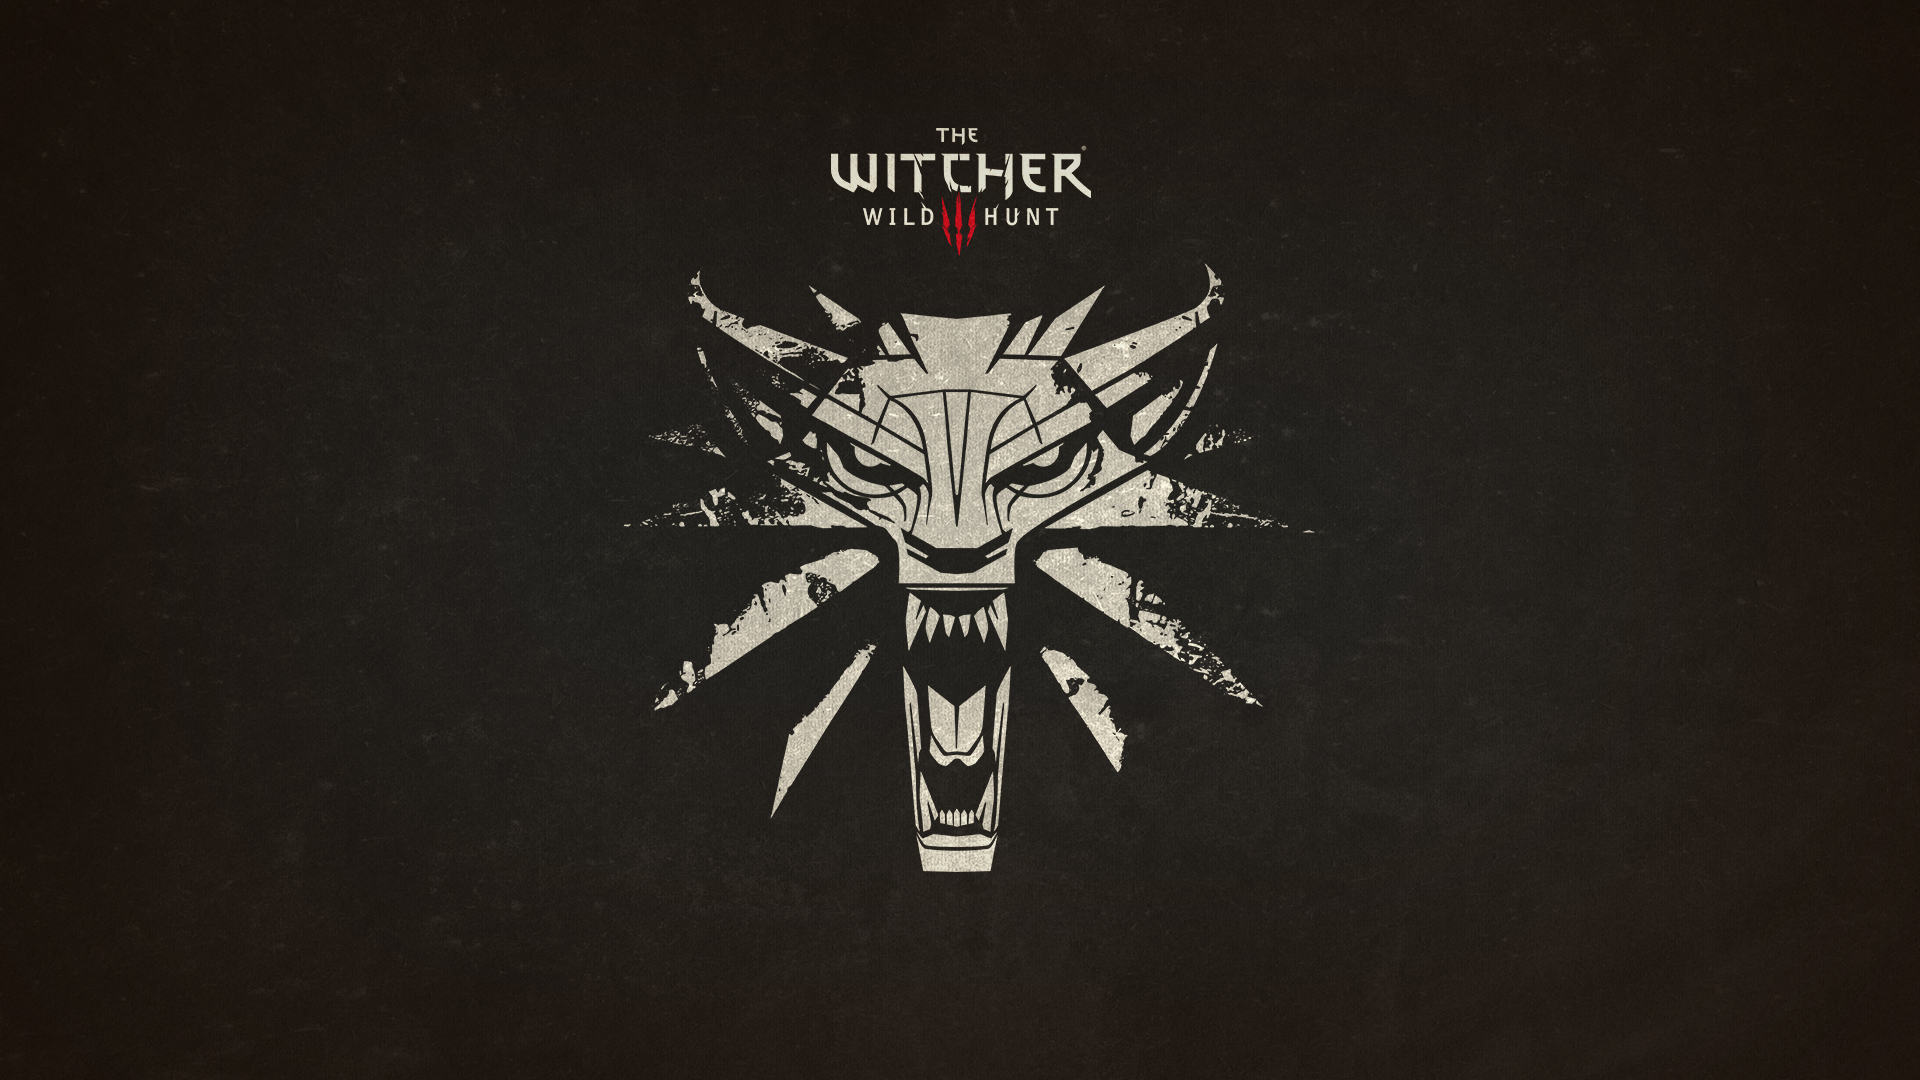 The Witcher 3 Wild Hunt, обои - Witcher 3: Wild Hunt, the The Witcher 3 Wild Hunt обои, The Witcher 3 Wild Hunt, обои